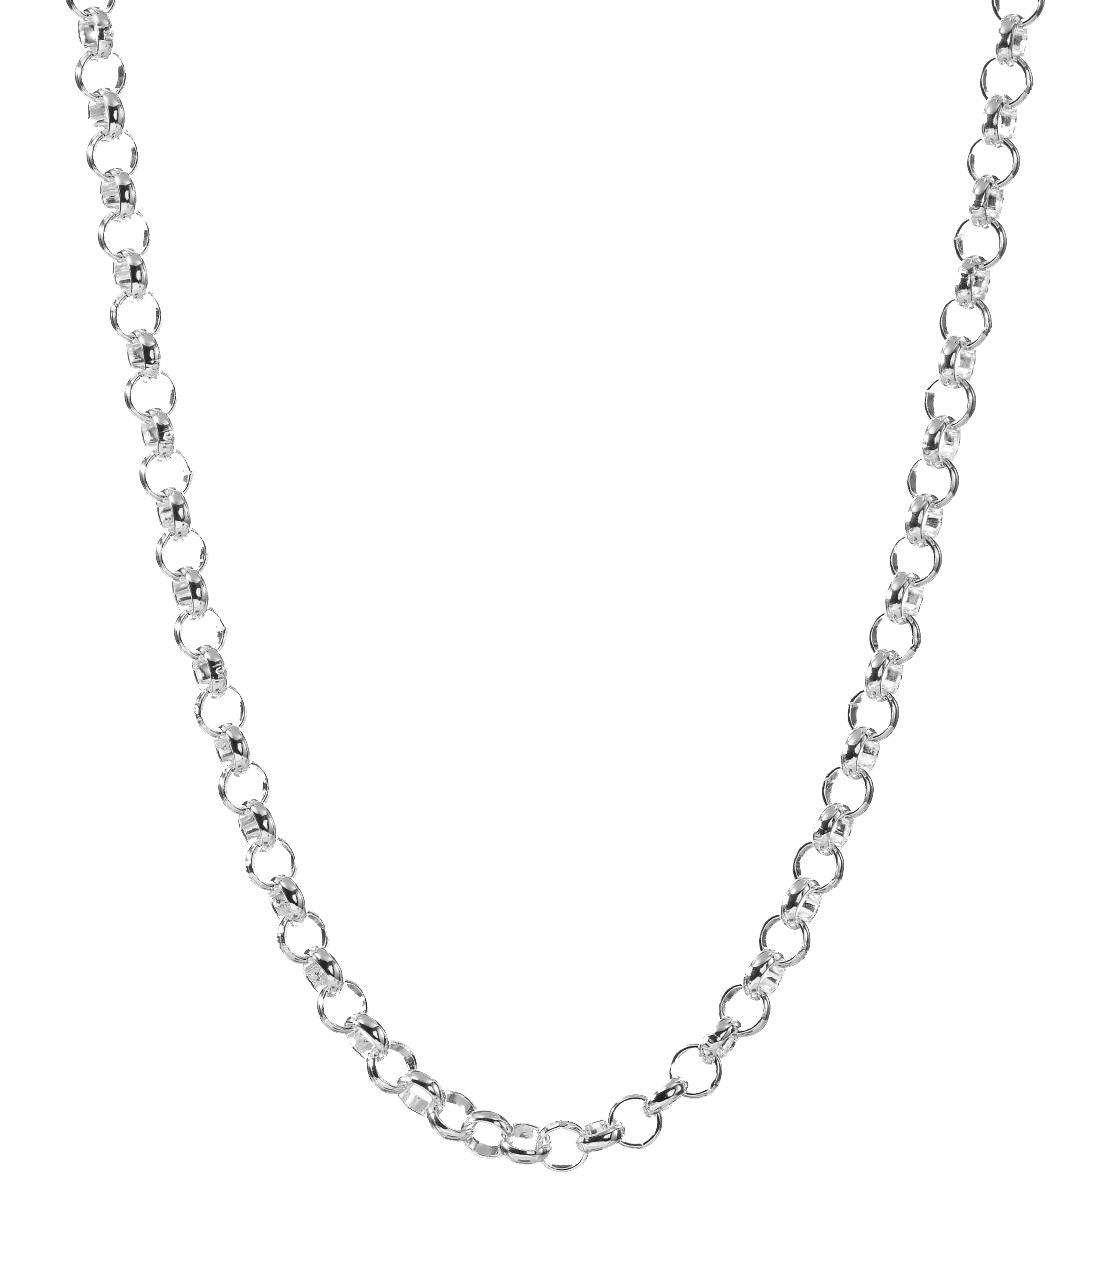 Chain Necklace Png Necklace Png N Intended Idea - Chain PNG